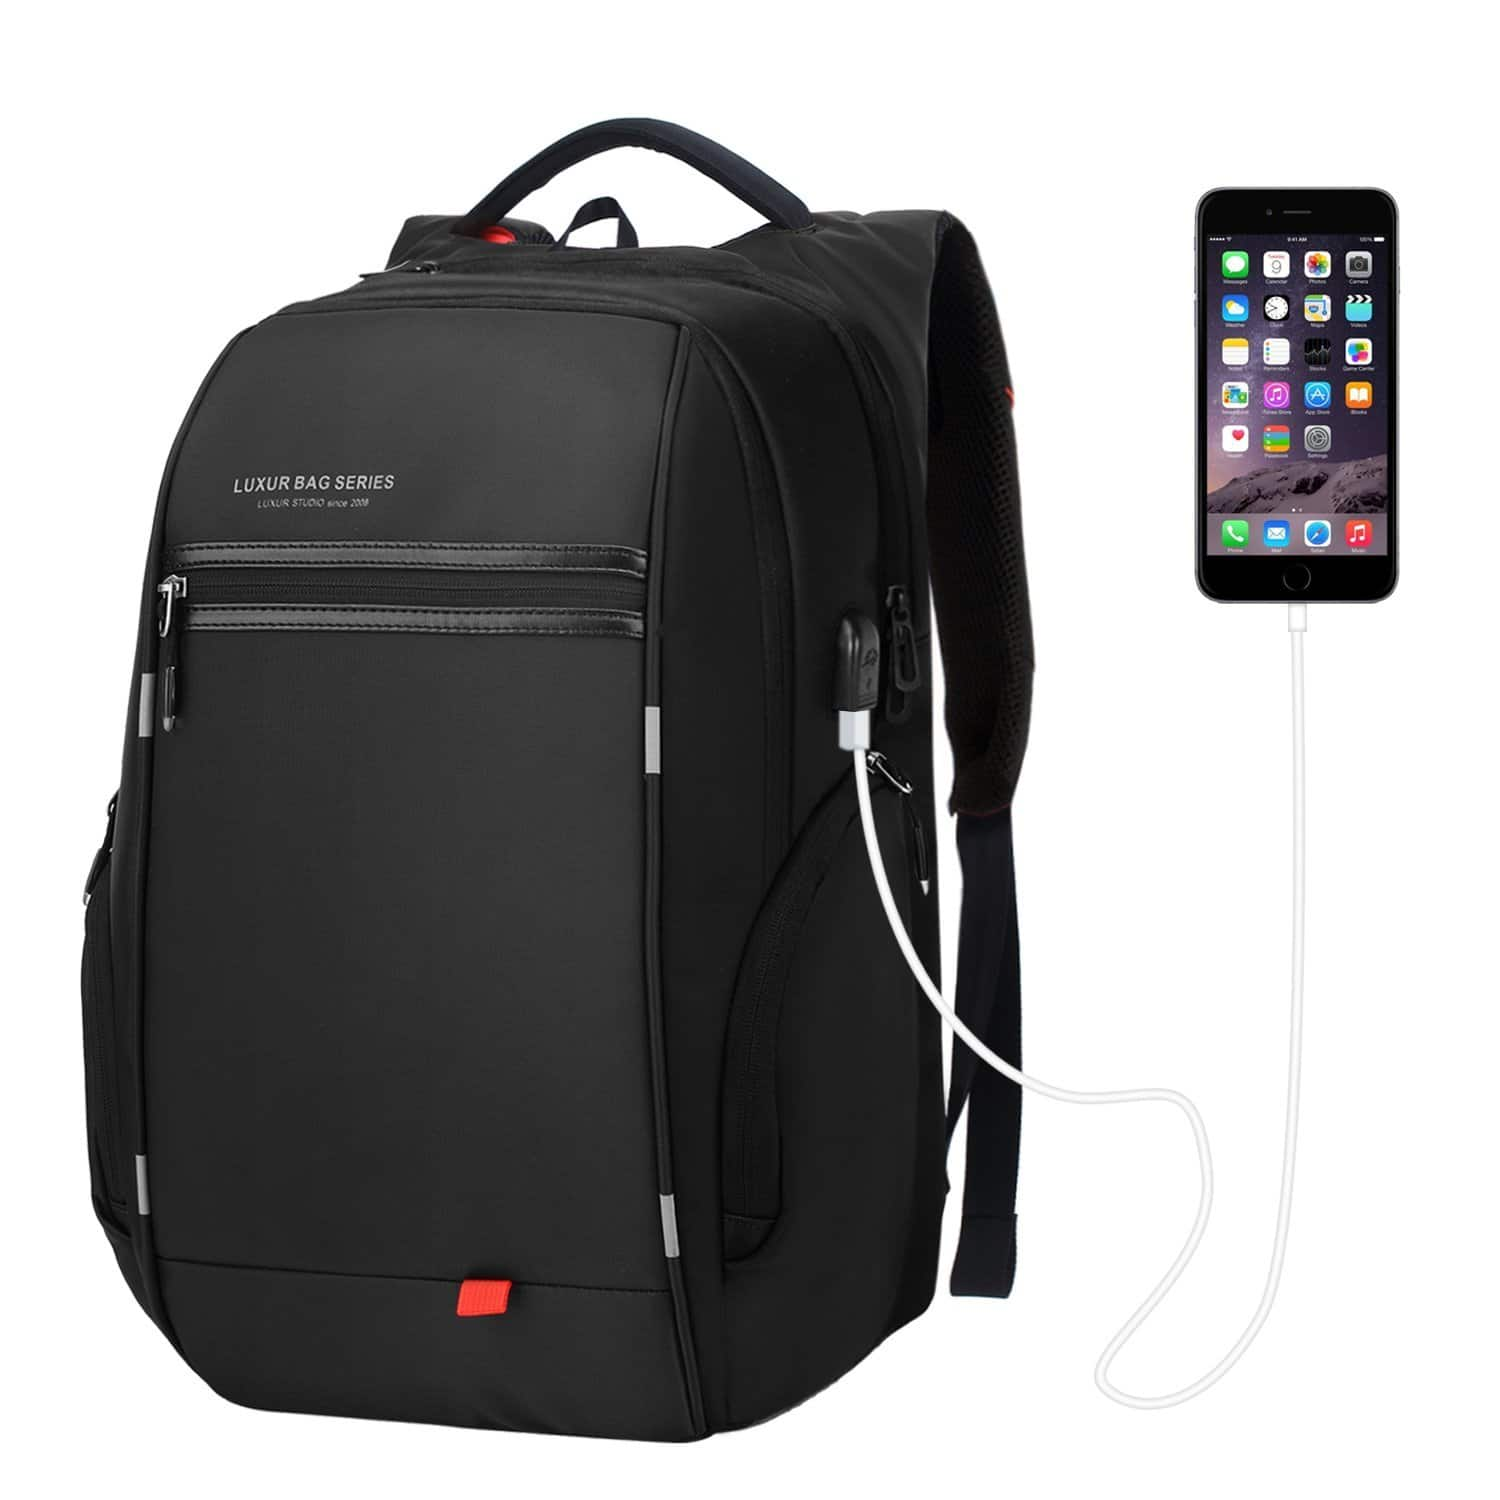 37L Waterproof Laptop Backpack with USB Charging Port $23.99 FS @Amazon